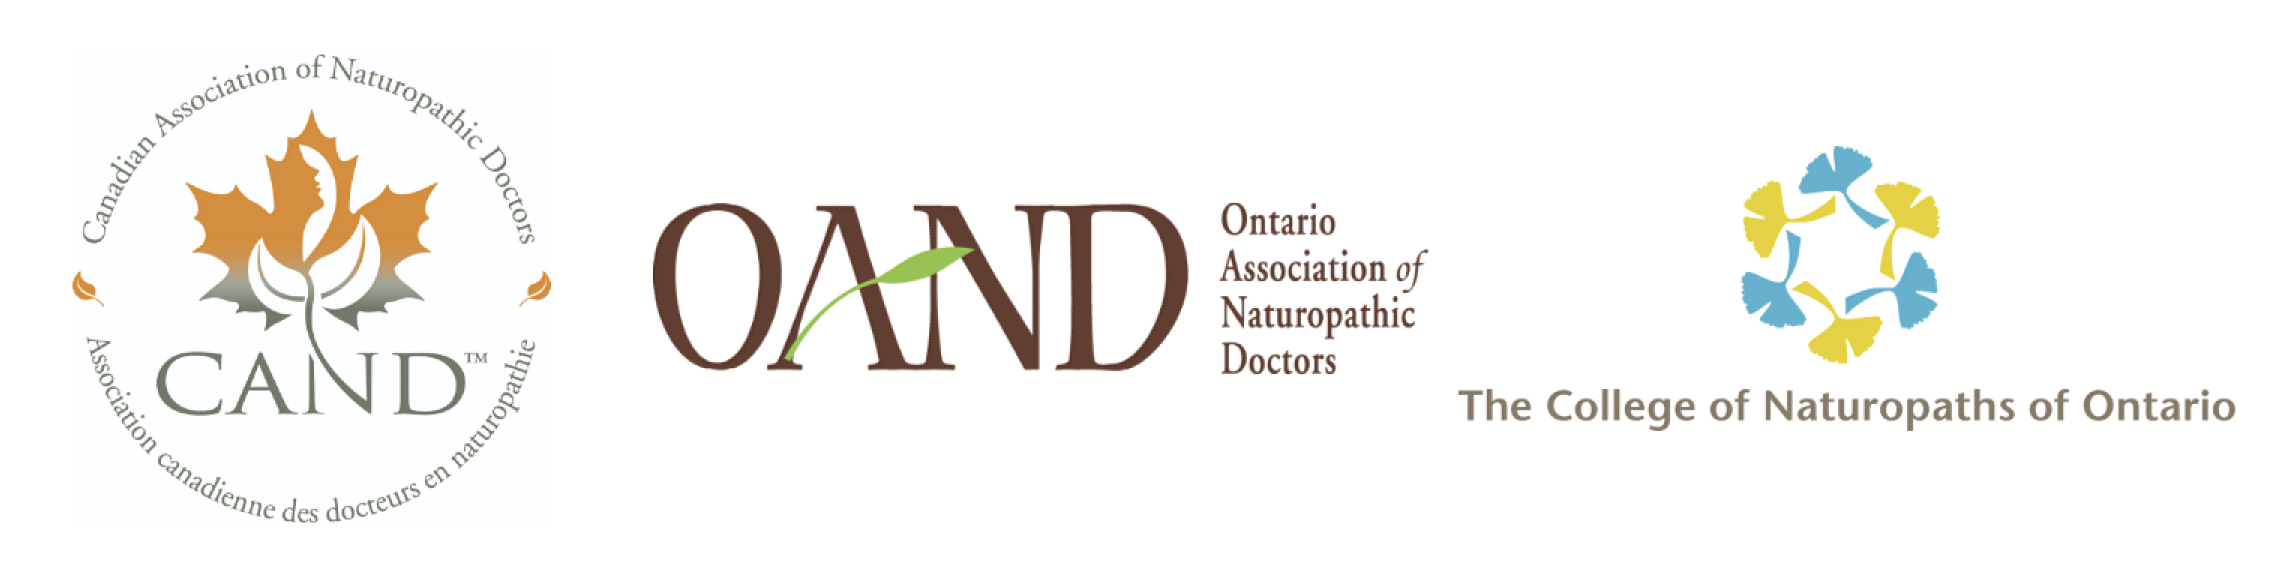 canadian and ontario association of naturopathic doctors, college of naturopaths ontario regulatory boards